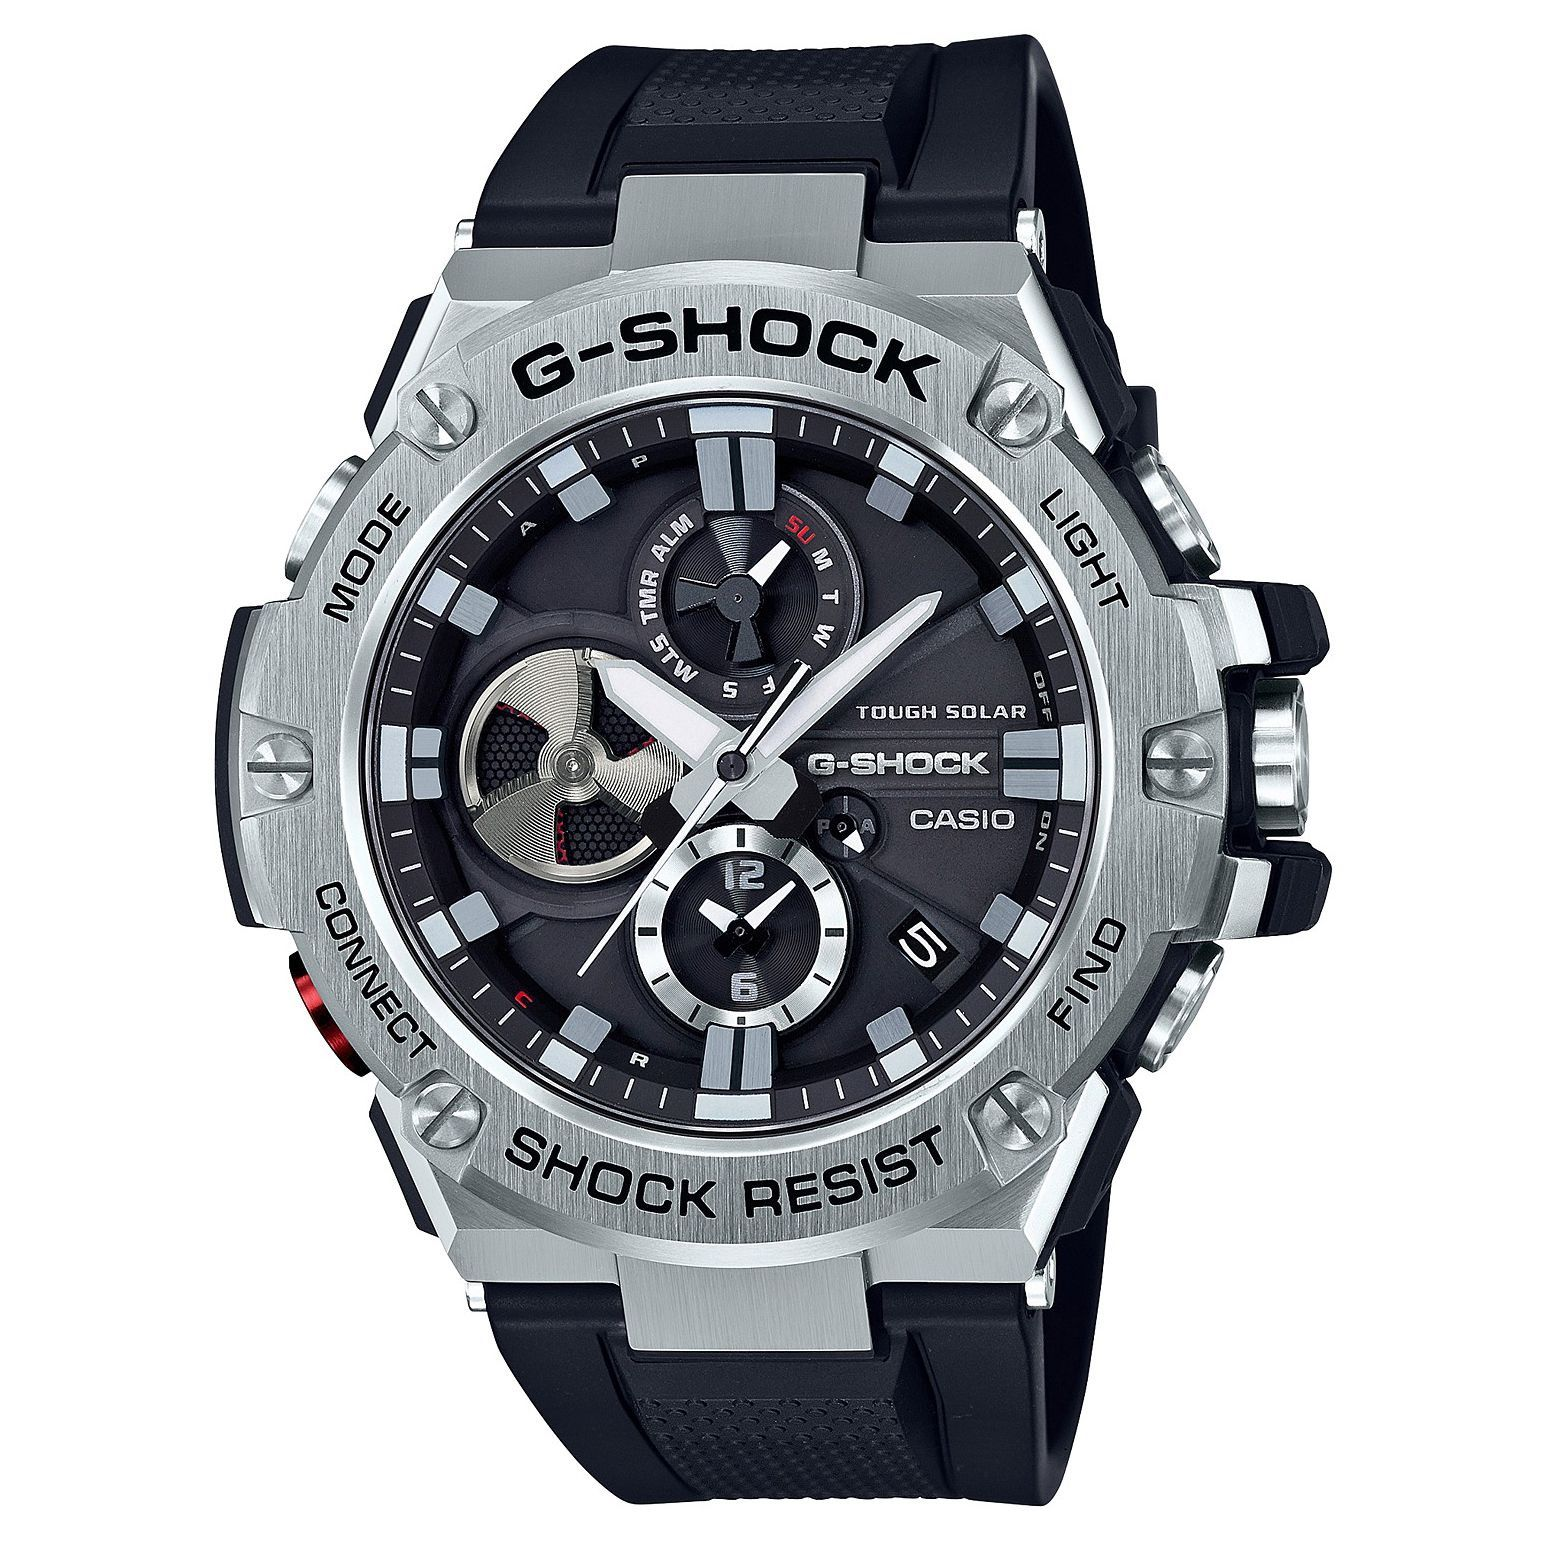 e984b0d0124d 11 Best G-Shock Watches to Buy in 2019 - Cool Casio G-Shock Watches